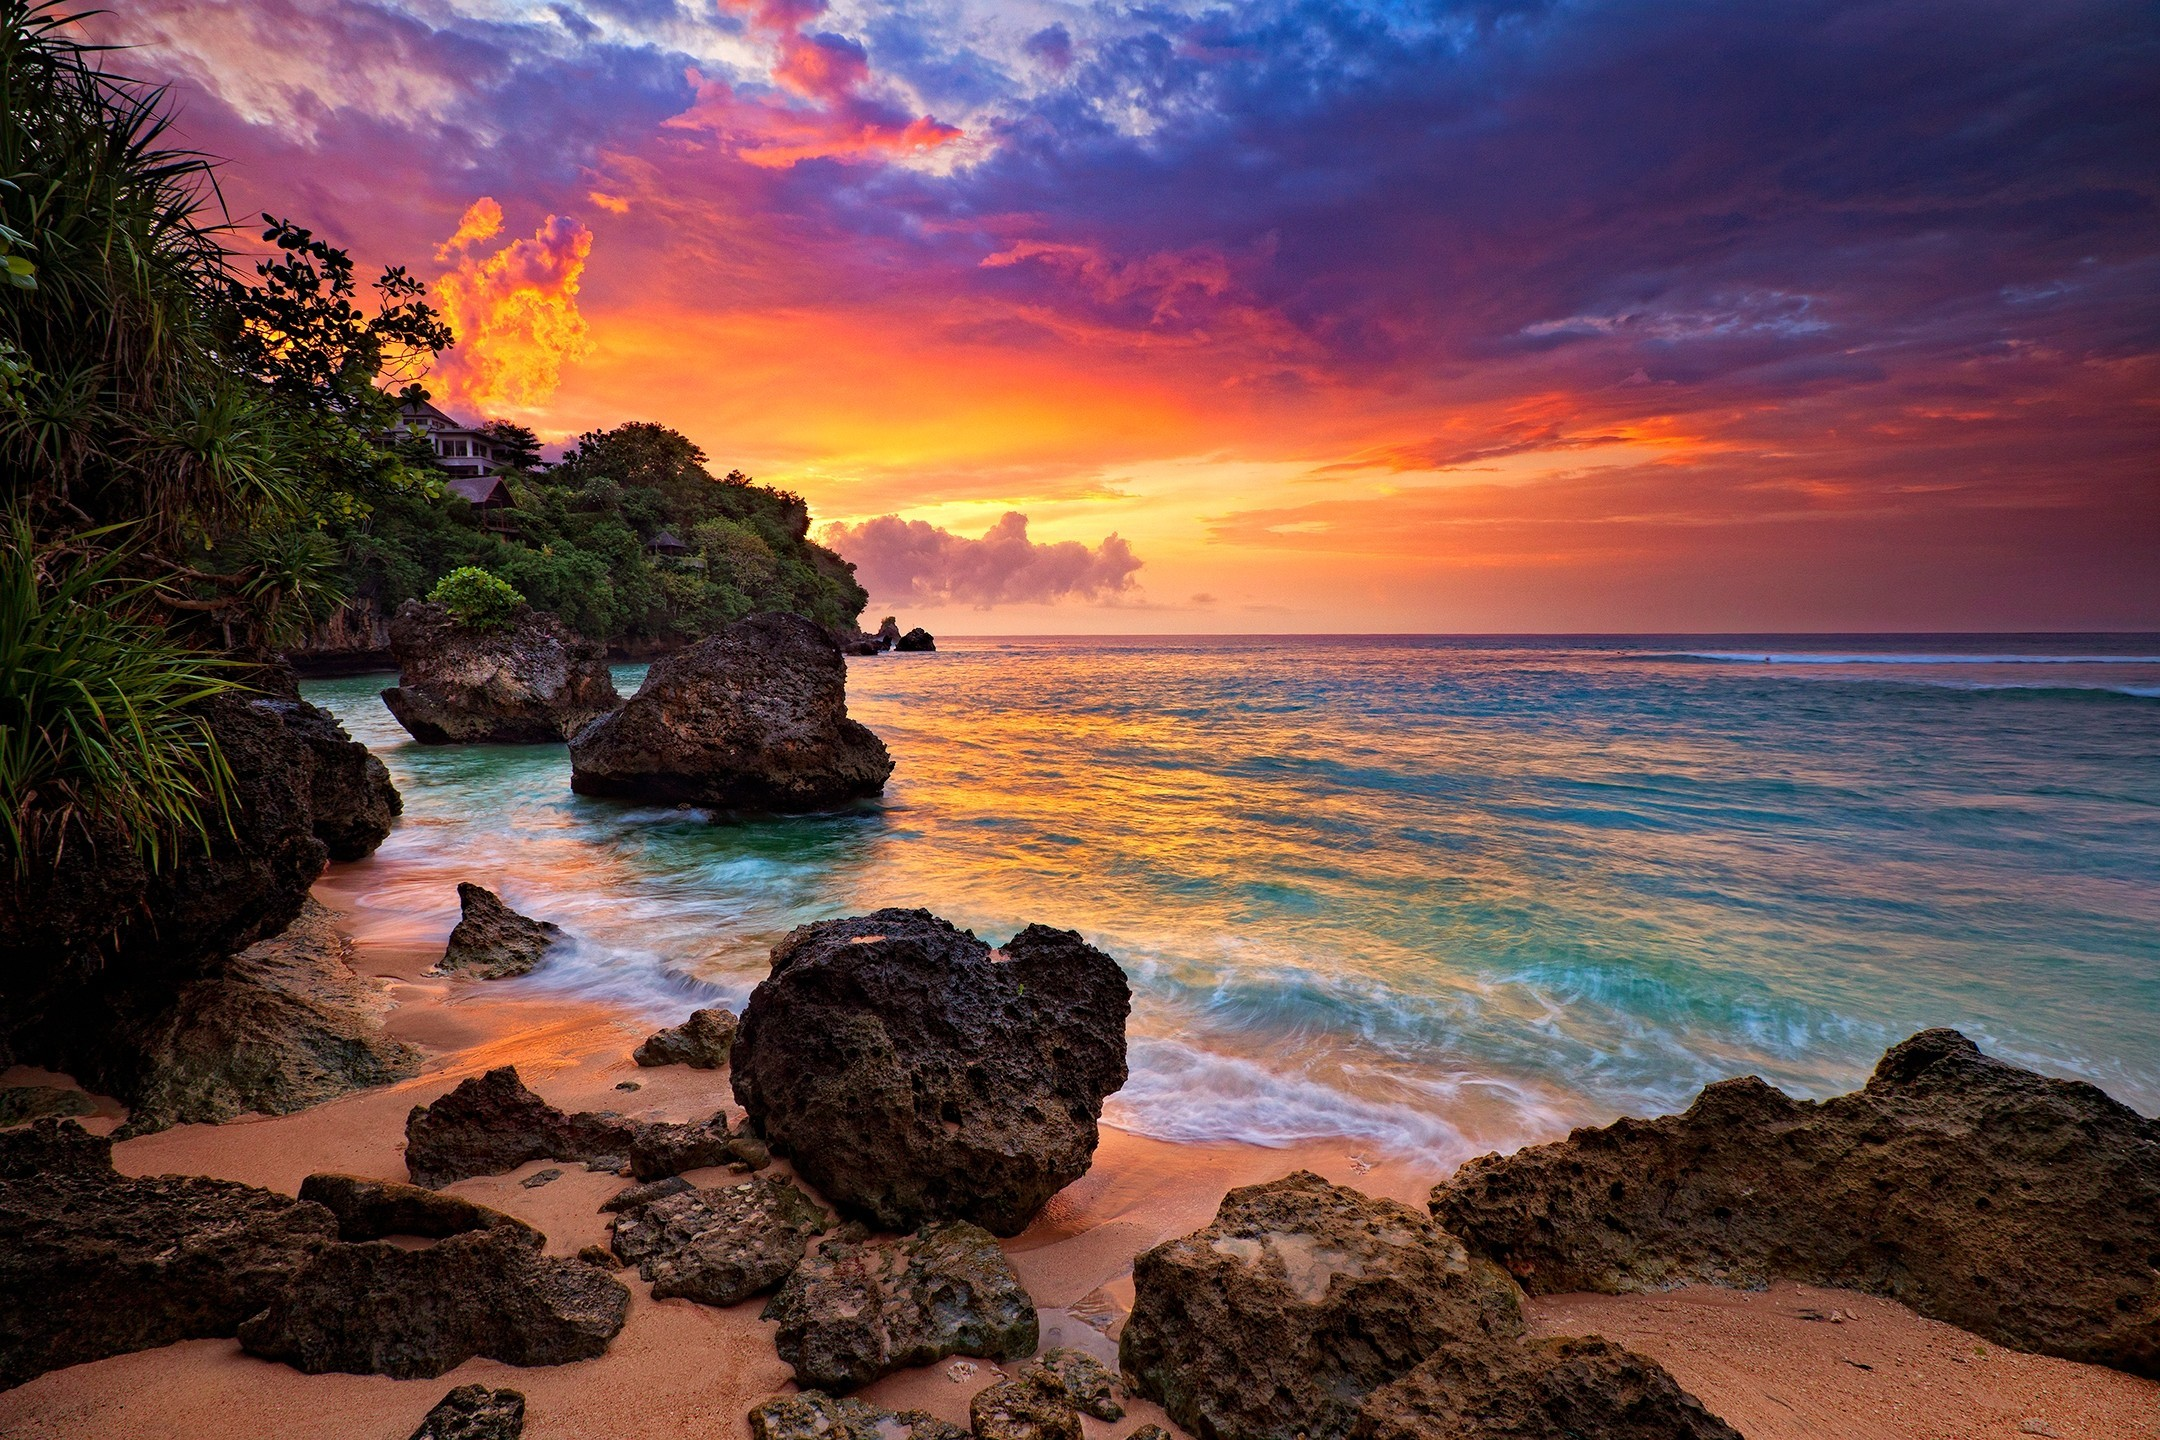 2160x1440 Beach Sky Sunset Rocks Clouds Hidden Ocean Bali Trees Waves Sand Indonesia  Island House Beautiful Beaches